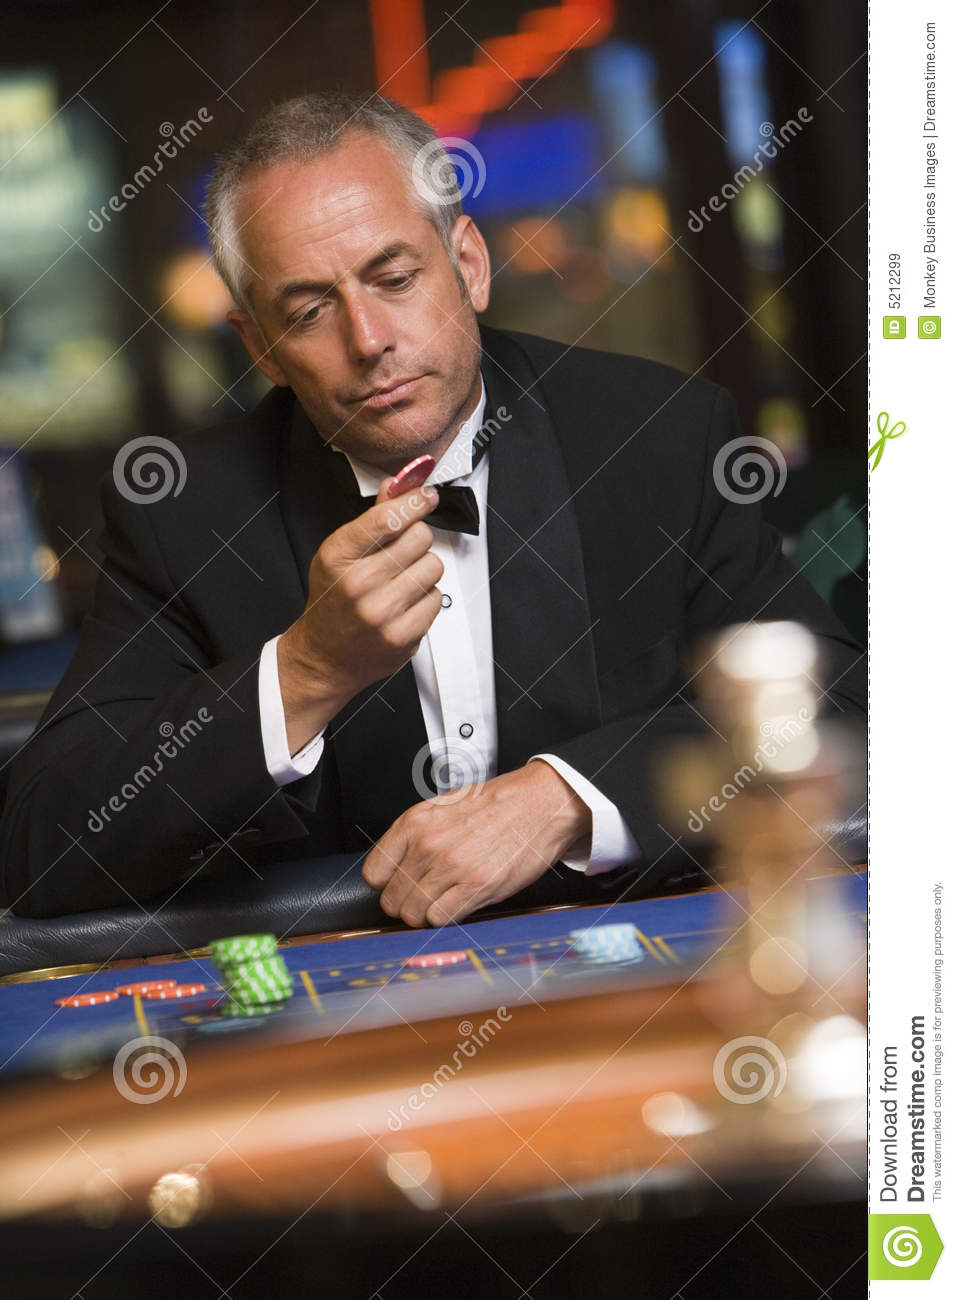 Man Losing At Roulette Table Royalty Free Stock Images - Image ...